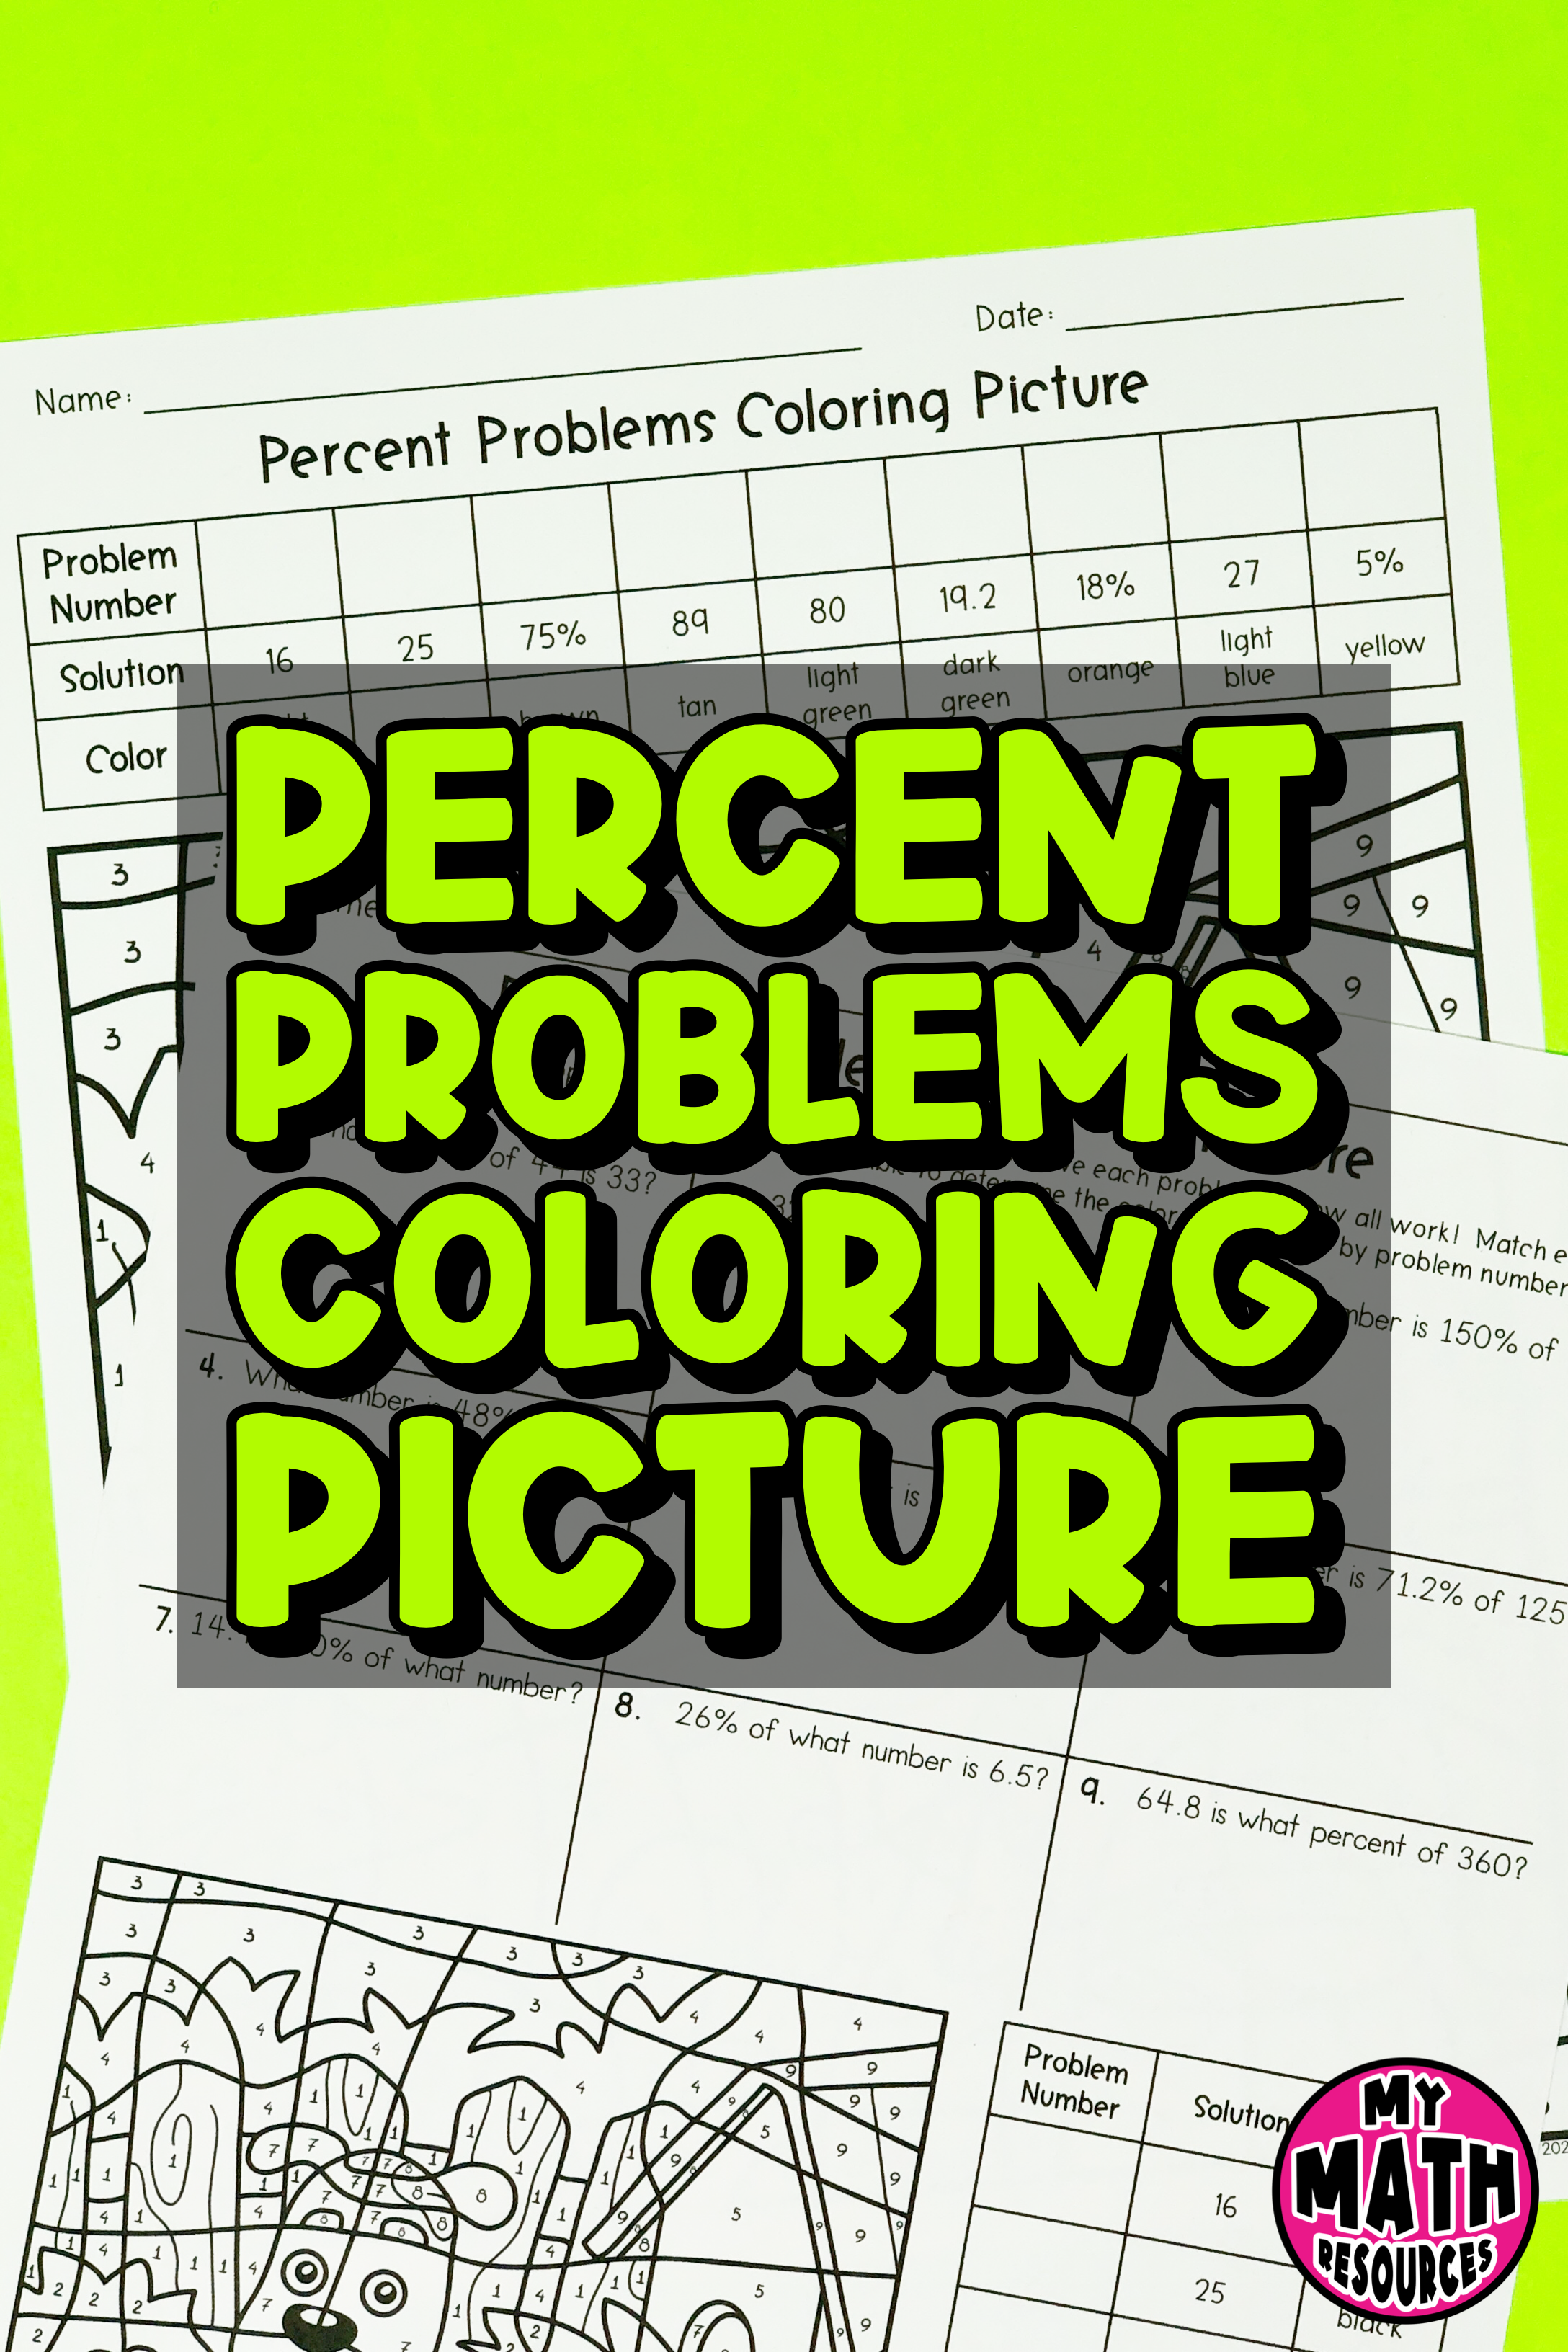 hight resolution of My Math Resources - Percent Problems Coloring Picture Worksheet   7th grade  math worksheets